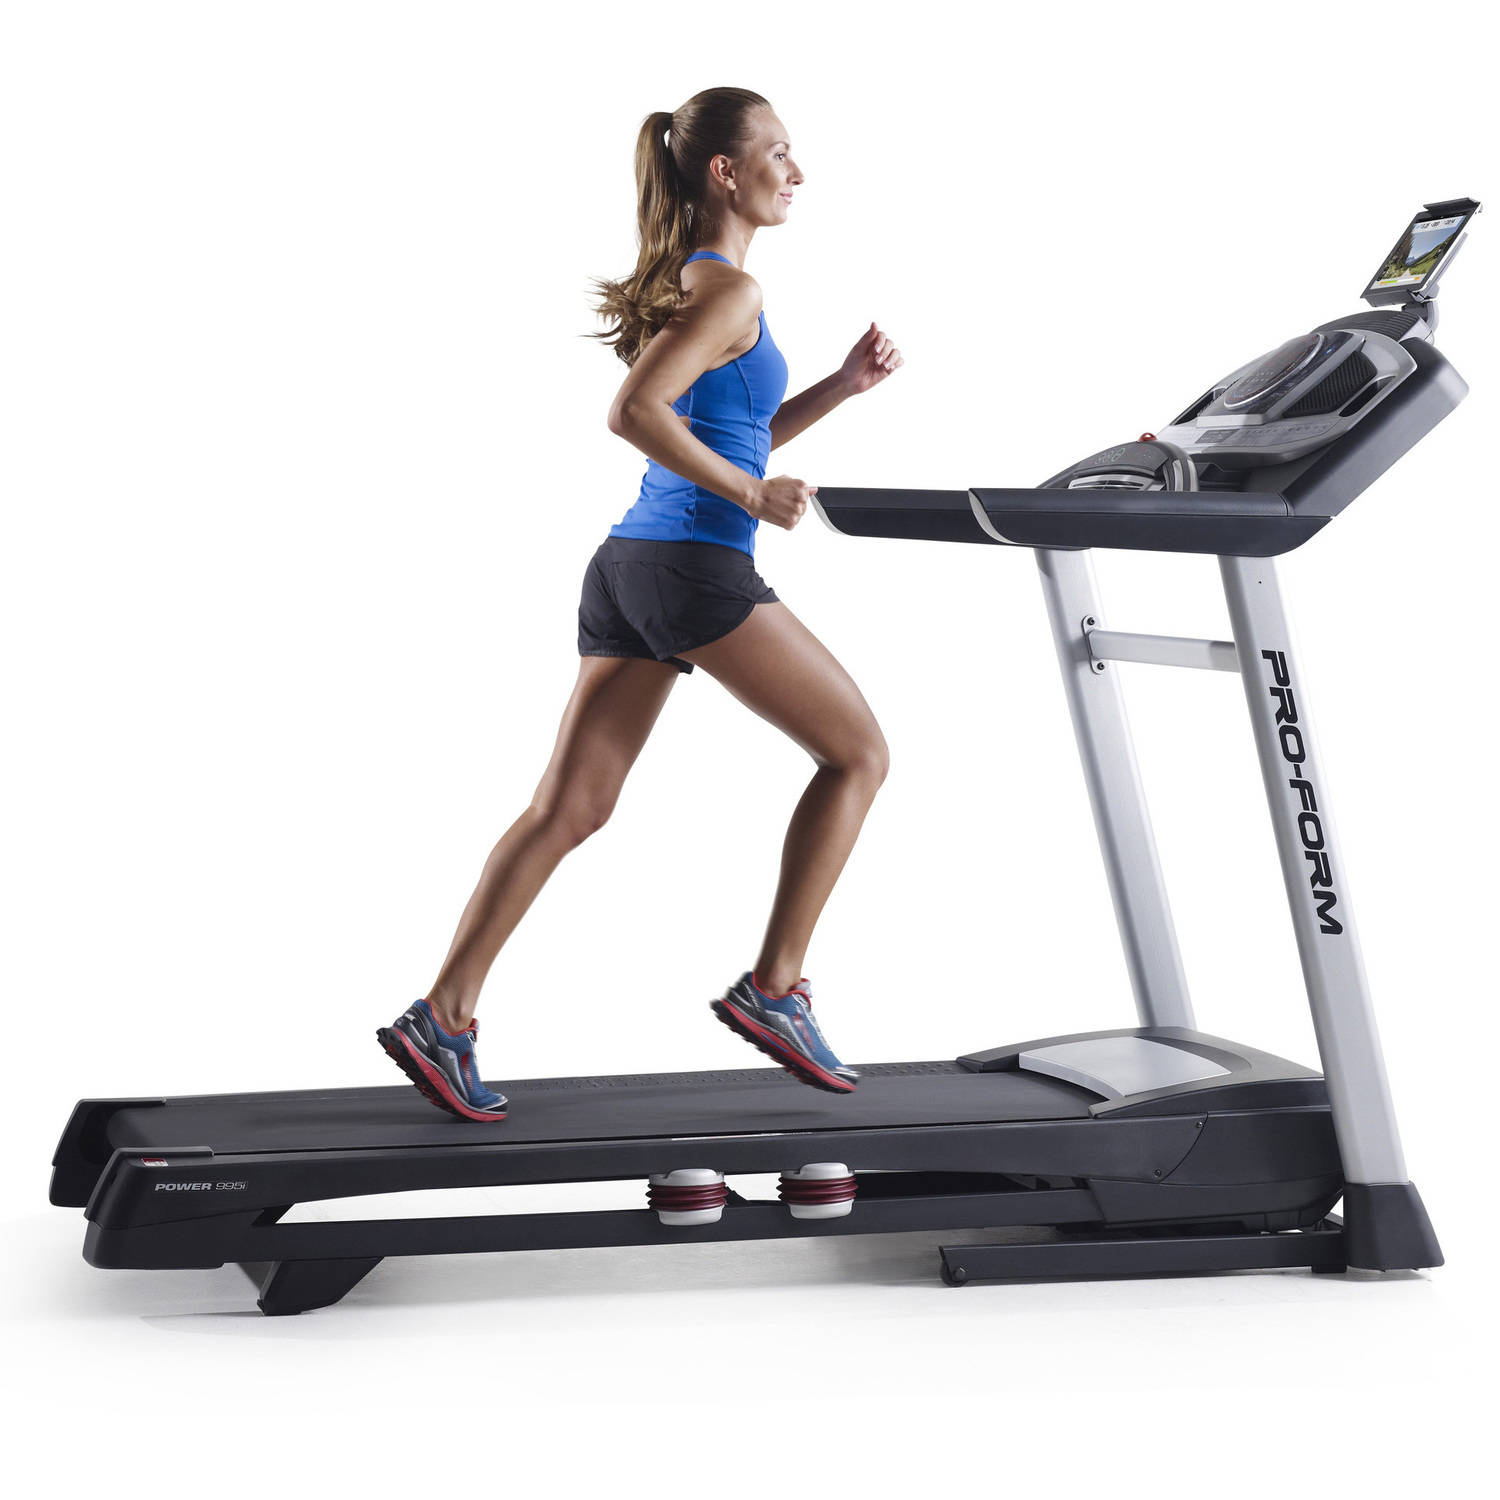 ProForm Power 995i Treadmill with Running Deck and 15% Power Incline